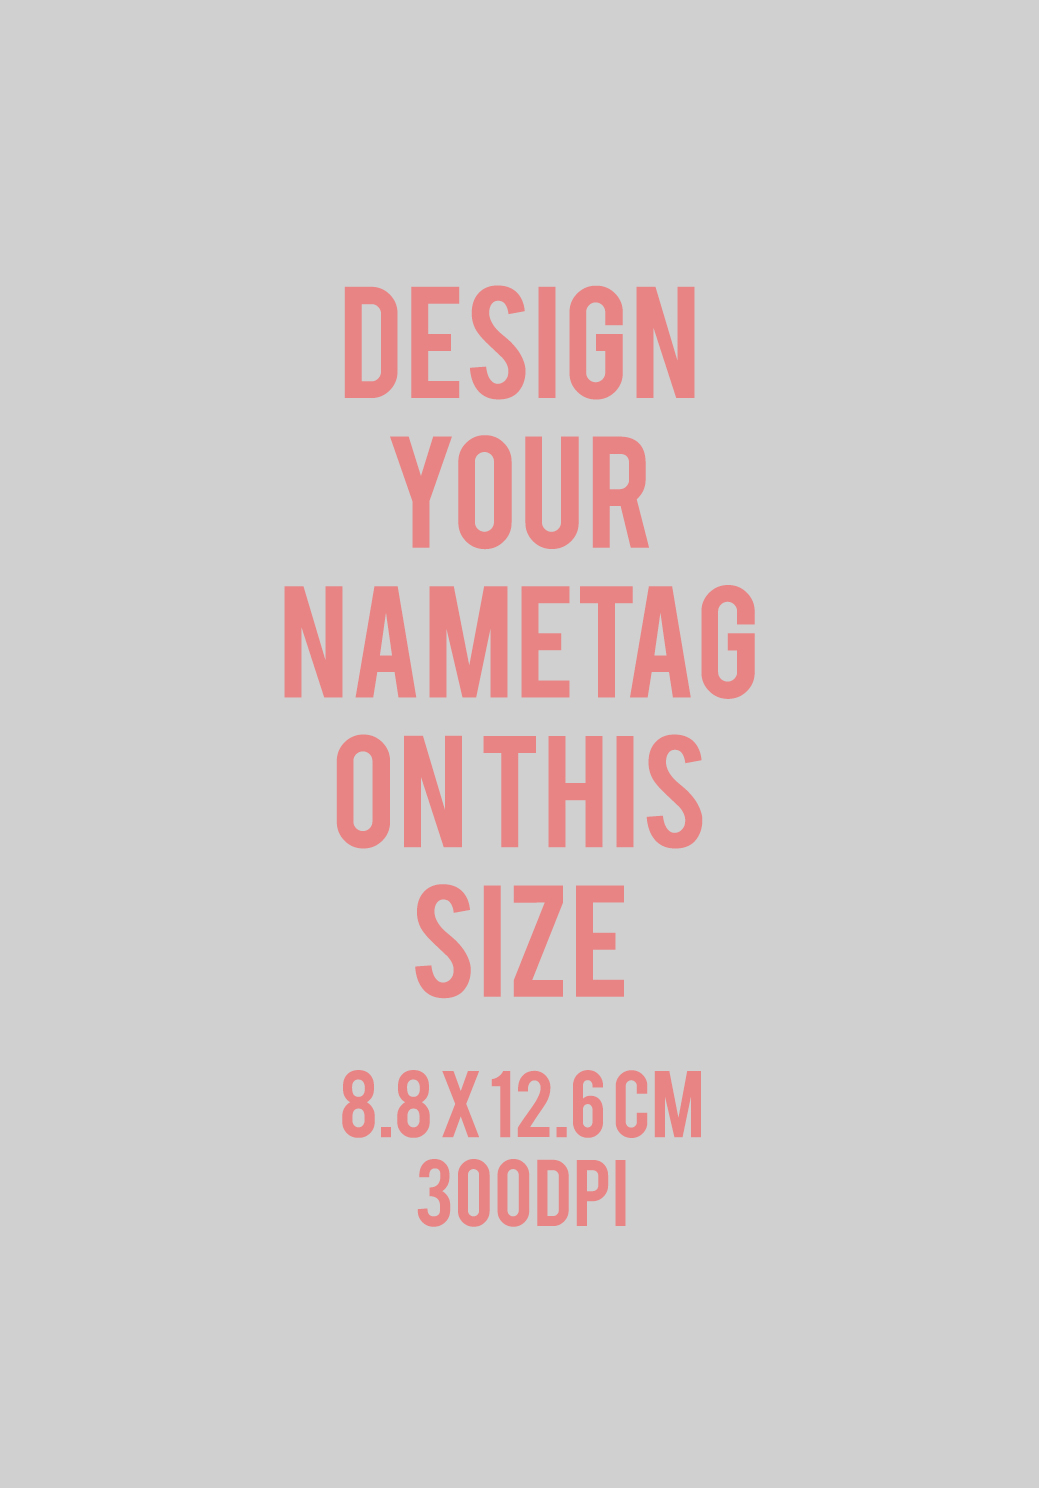 design-on-this-size